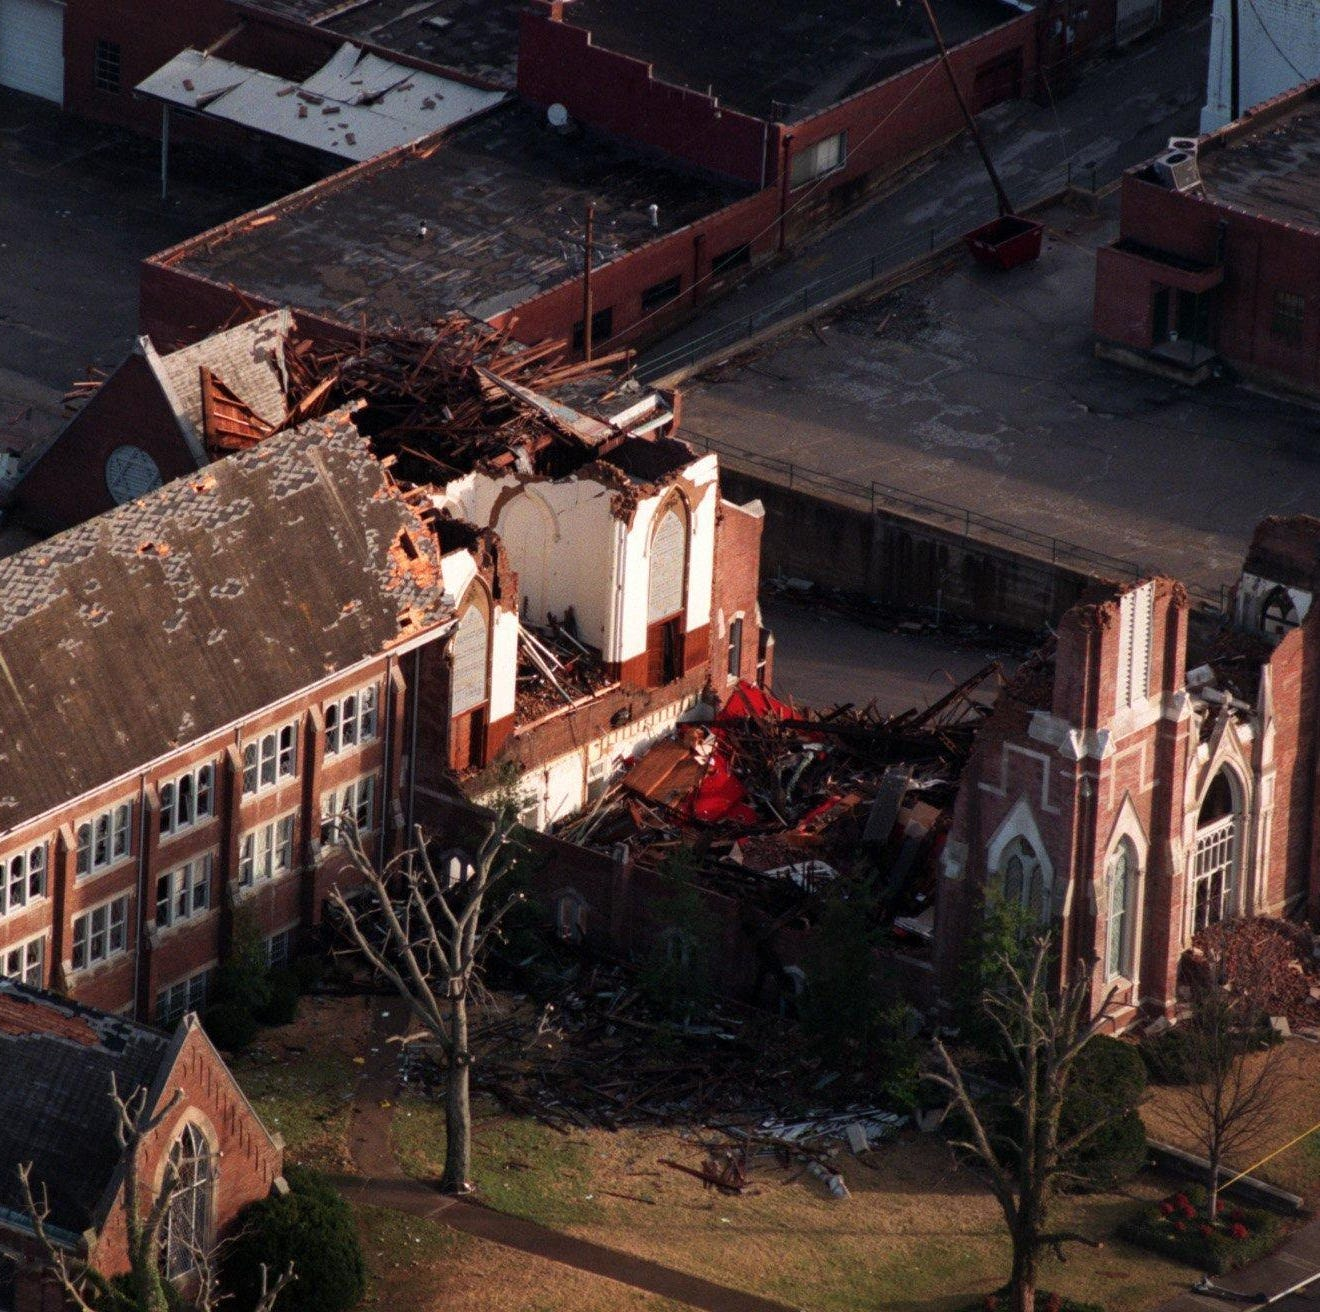 Remembering the 1999 Clarksville tornado: 'It looked like a bomb exploded'